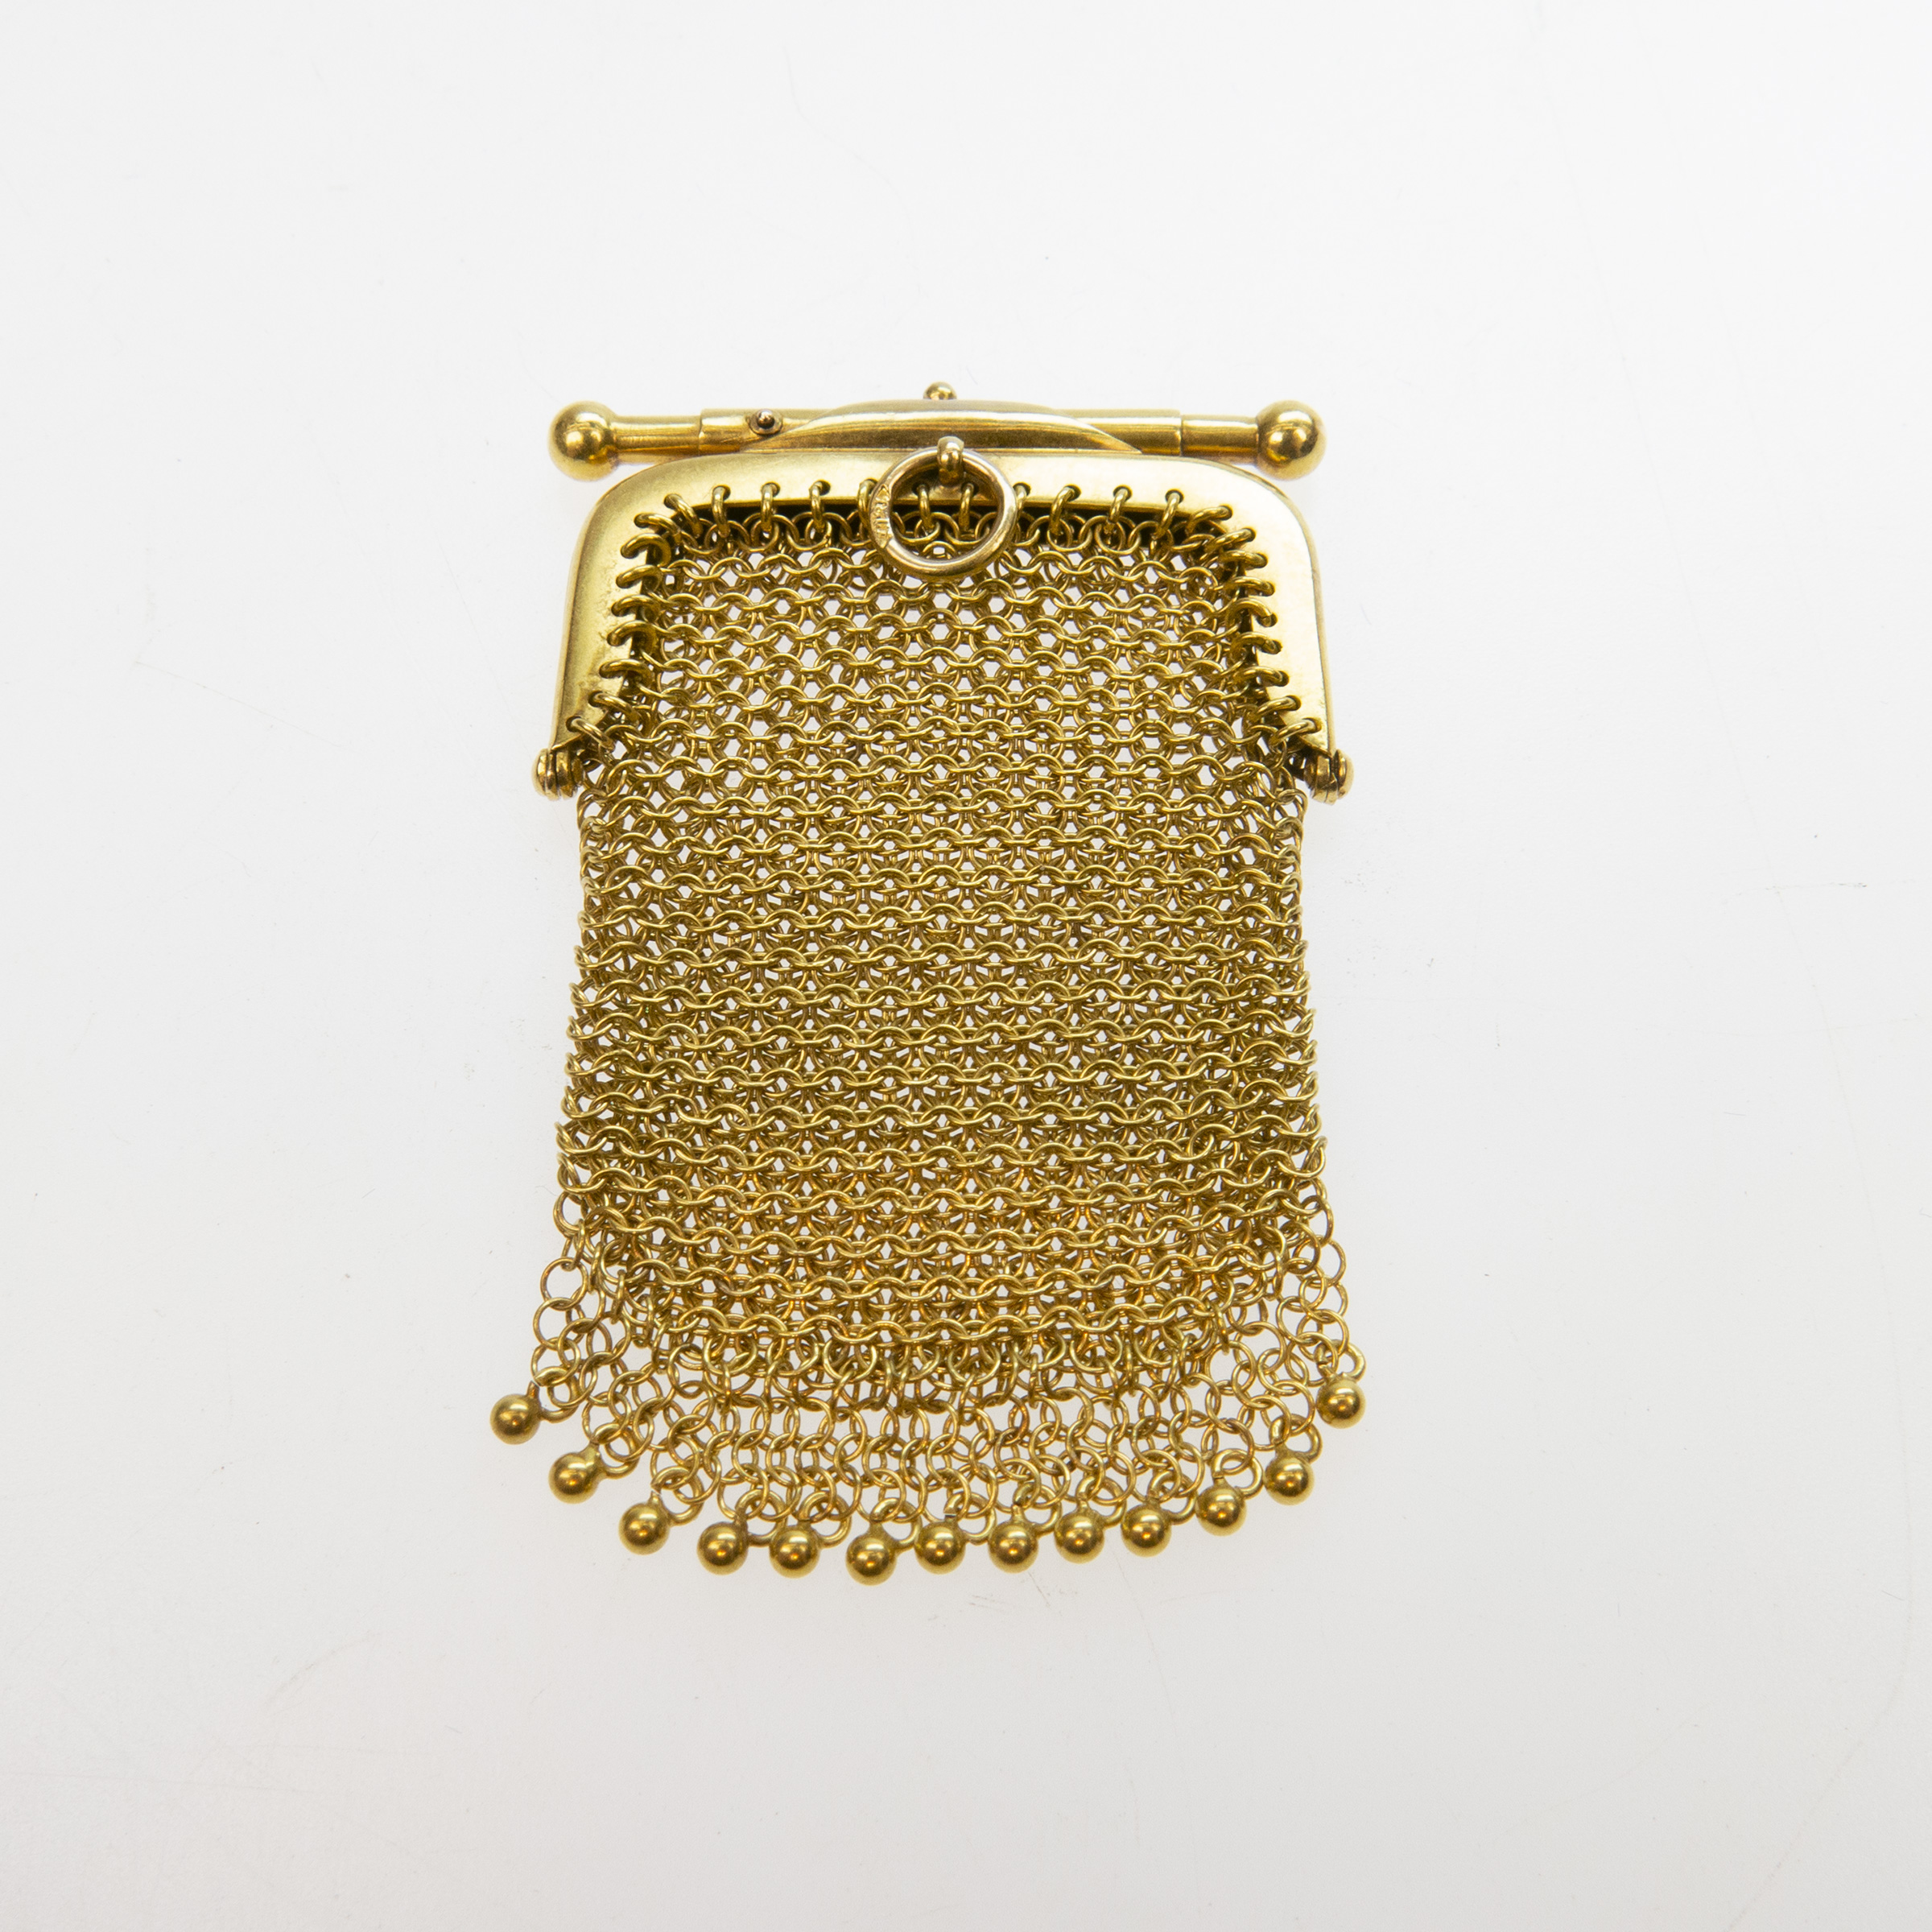 18k Yellow Gold Mesh Change Purse